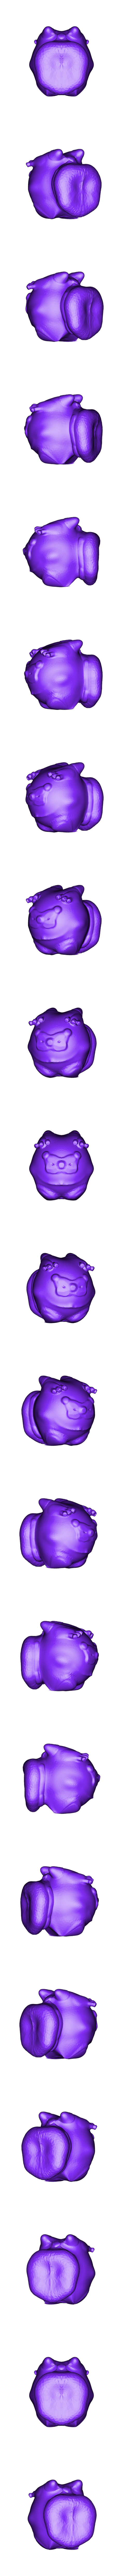 grouille.obj Download free OBJ file crawling (frog boy series minitoys) • 3D printing design, Majin59